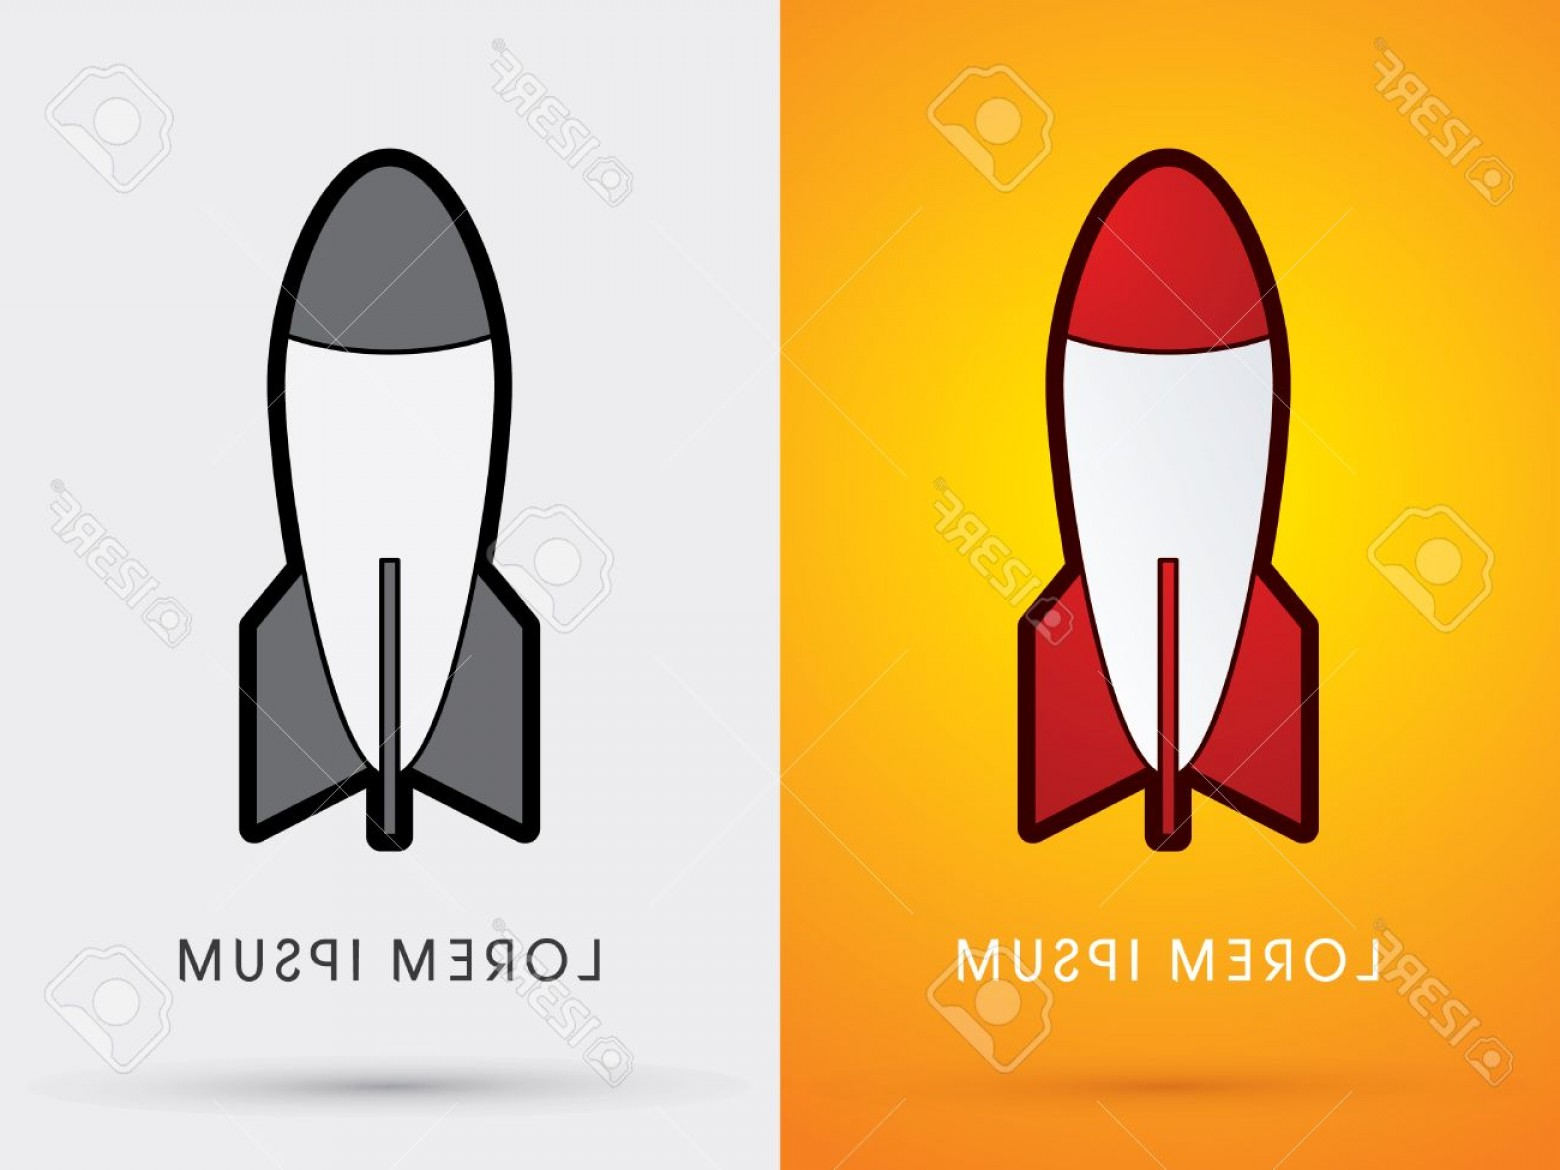 320 Vector: Photostock Vector Missile Rocket Weaponcartoon Logo Symbol Icon Graphic Vector